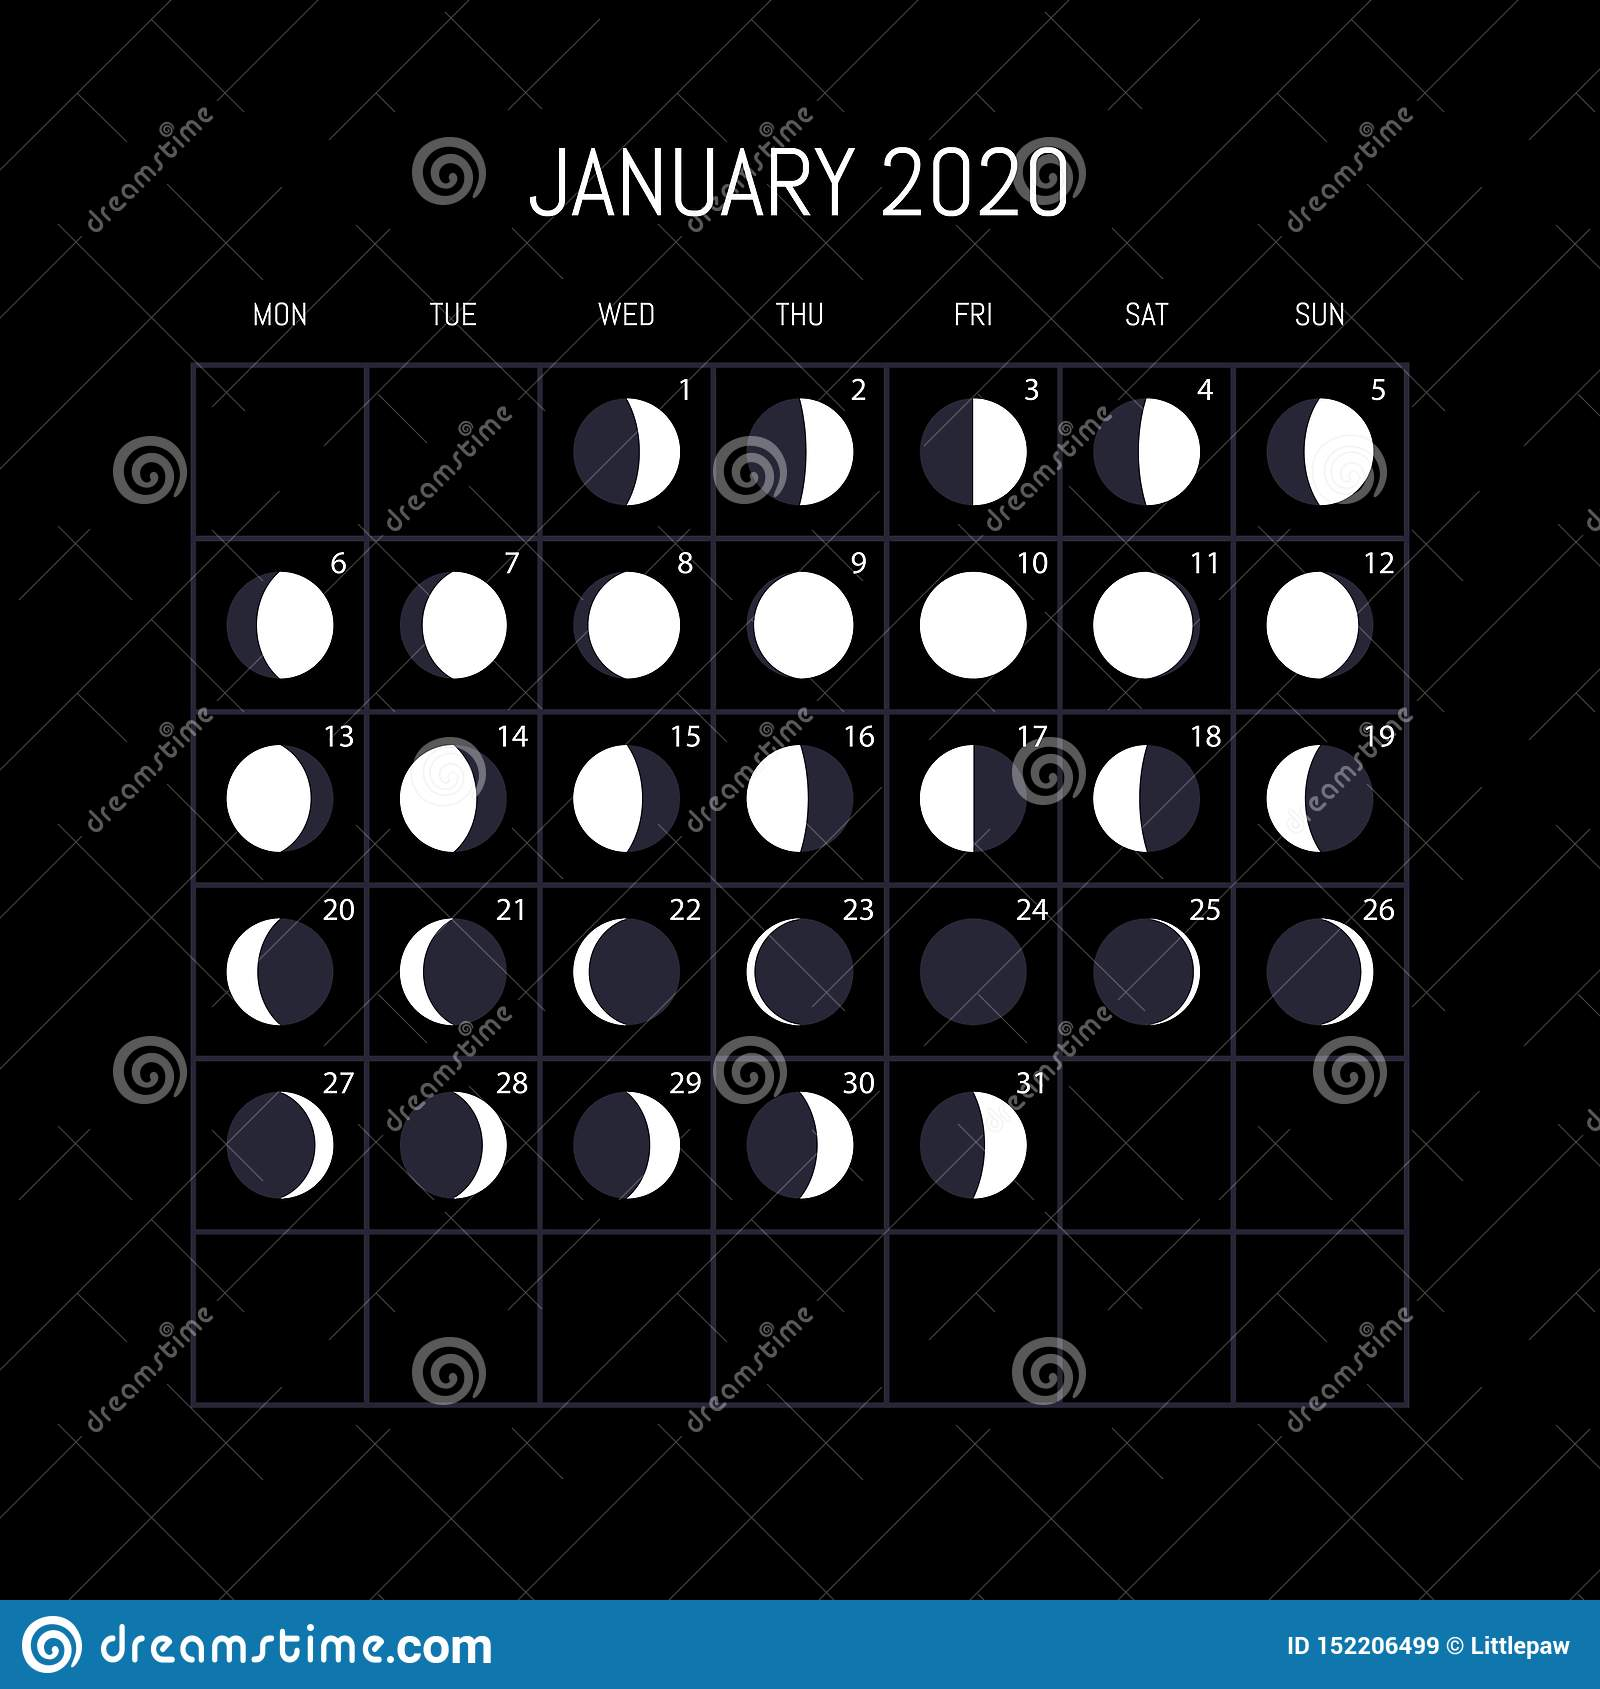 Moon Phase Calendar 2020 January Moon Phases Calendar For 2020 Year. January. Night Background